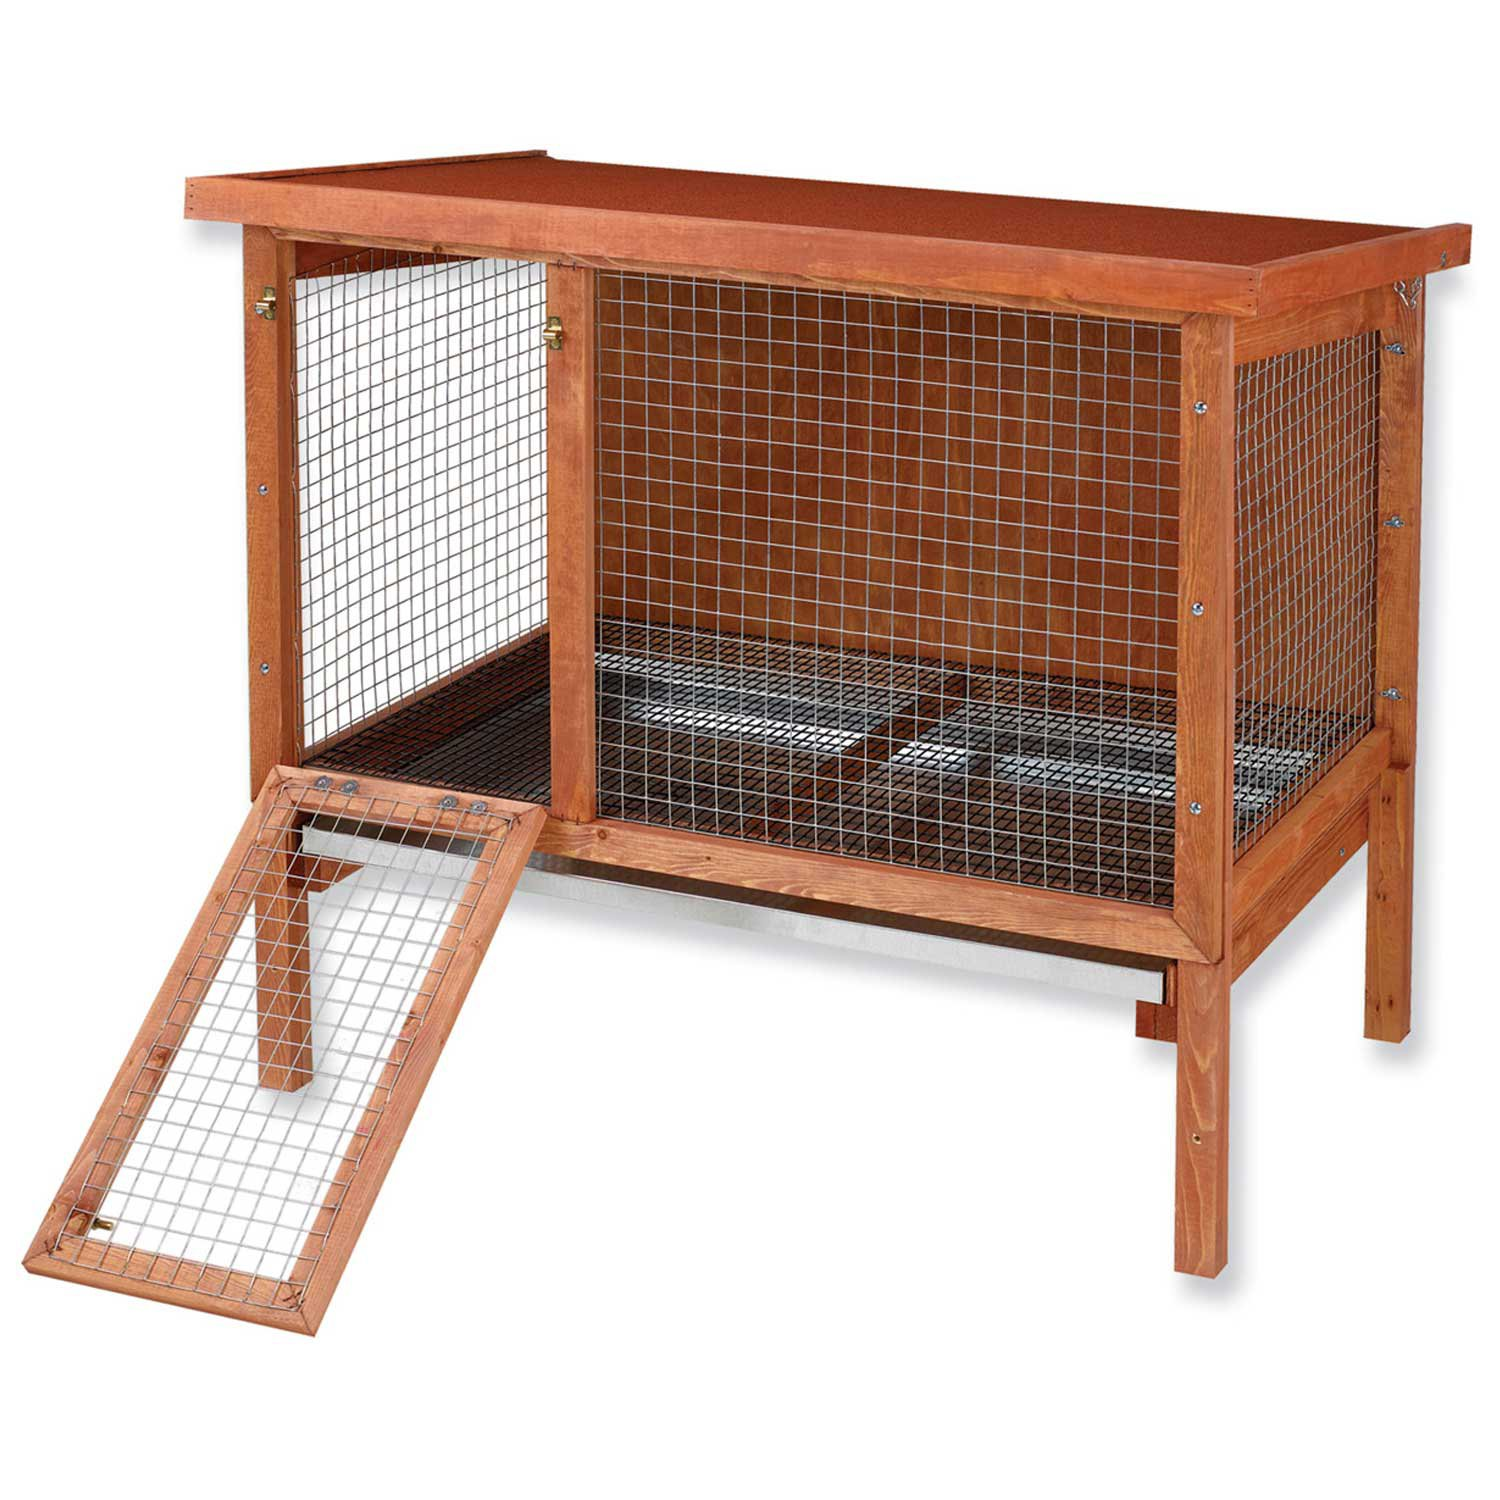 Ware hd large rabbit hutch petco for What is a rabbit hutch